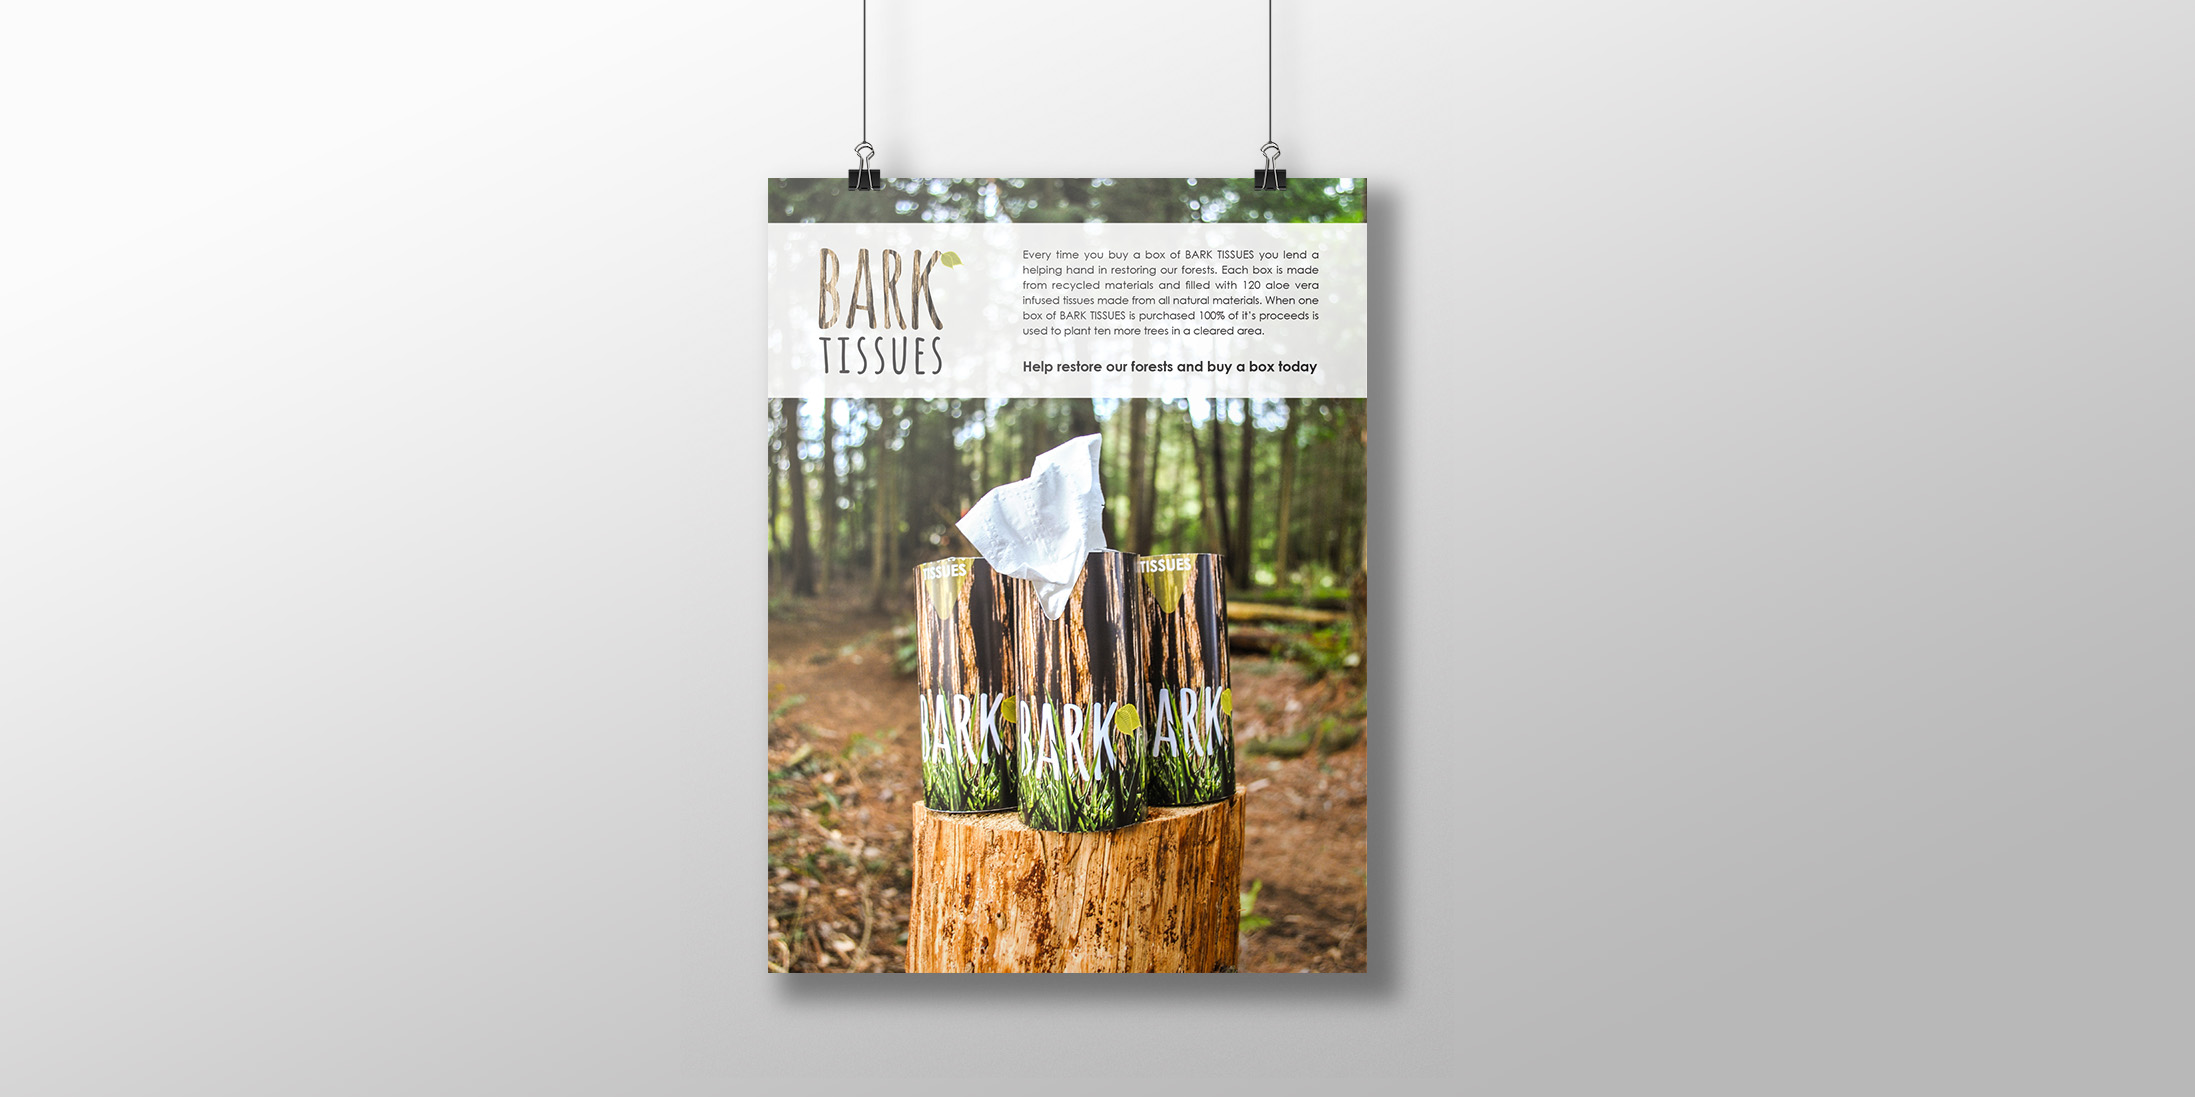 BARK TISSUES is a campaign  that strives to educate individuals of our environment's condition. When one box of BARK TISSUES is purchased the proceeds are used to plant trees in deforested areas. 2013 copyright Laurelle Armet